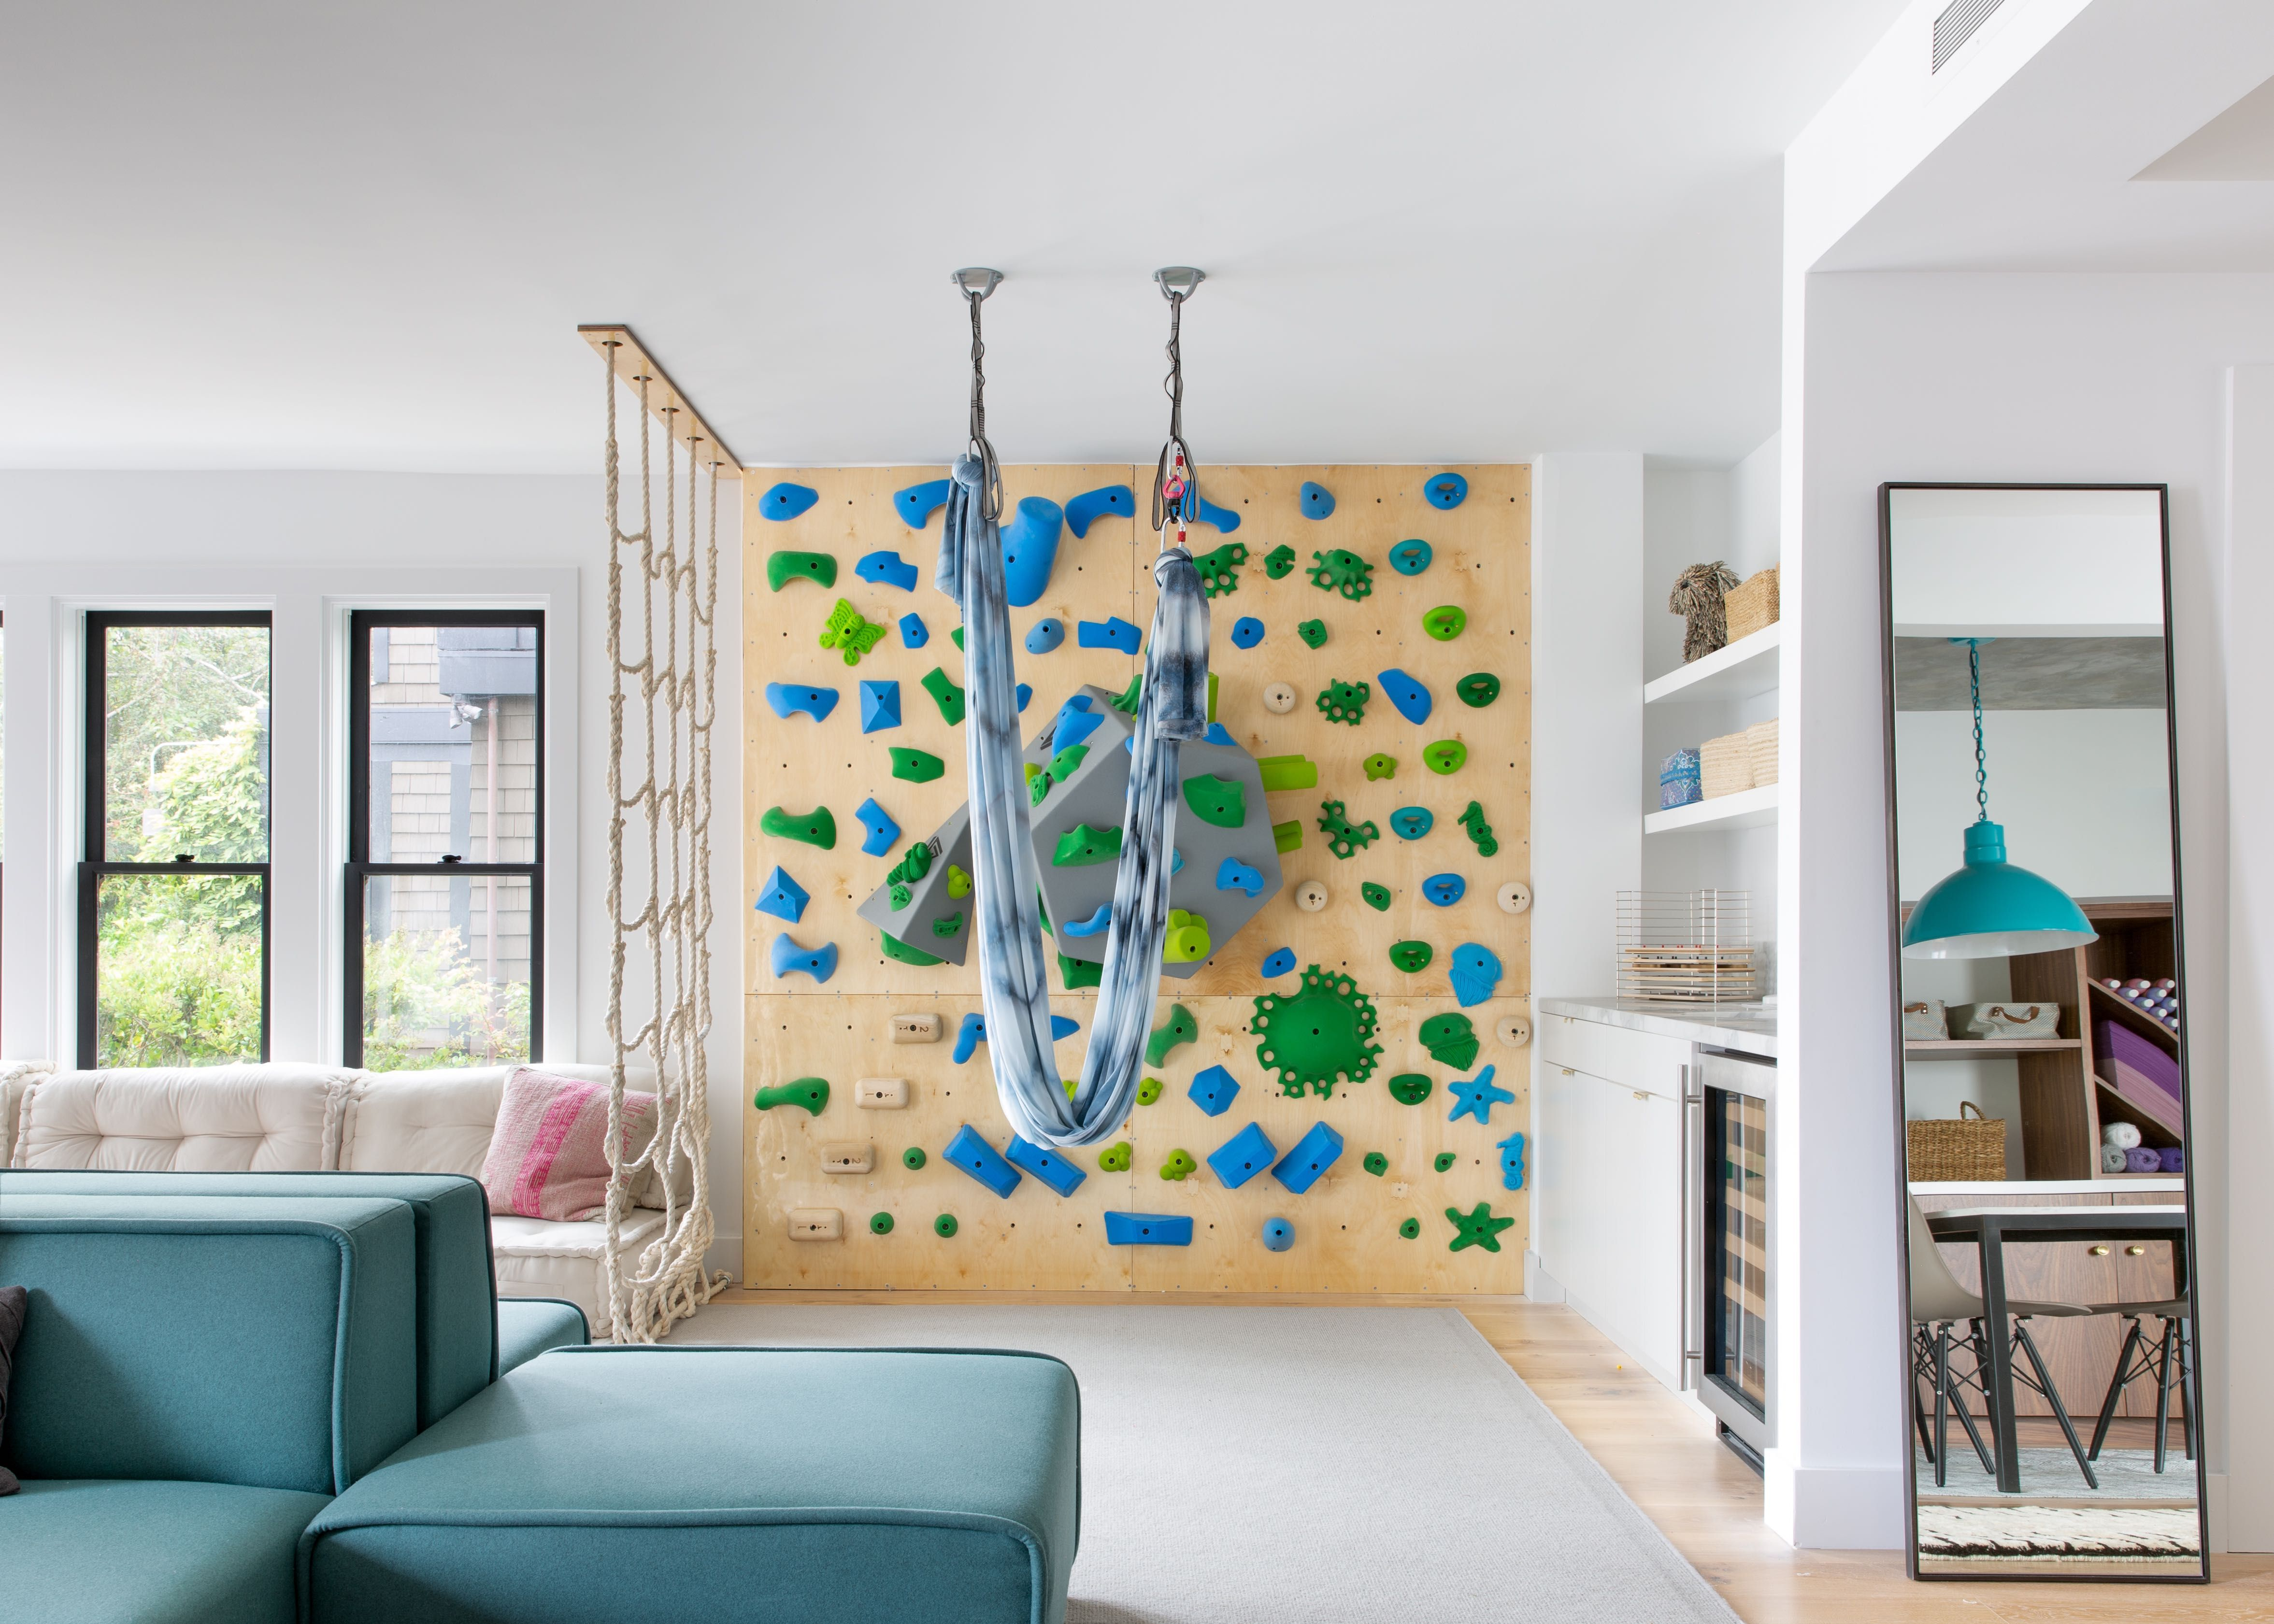 Now You'll Understand Why Every House Needs a Rock-Climbing Wall